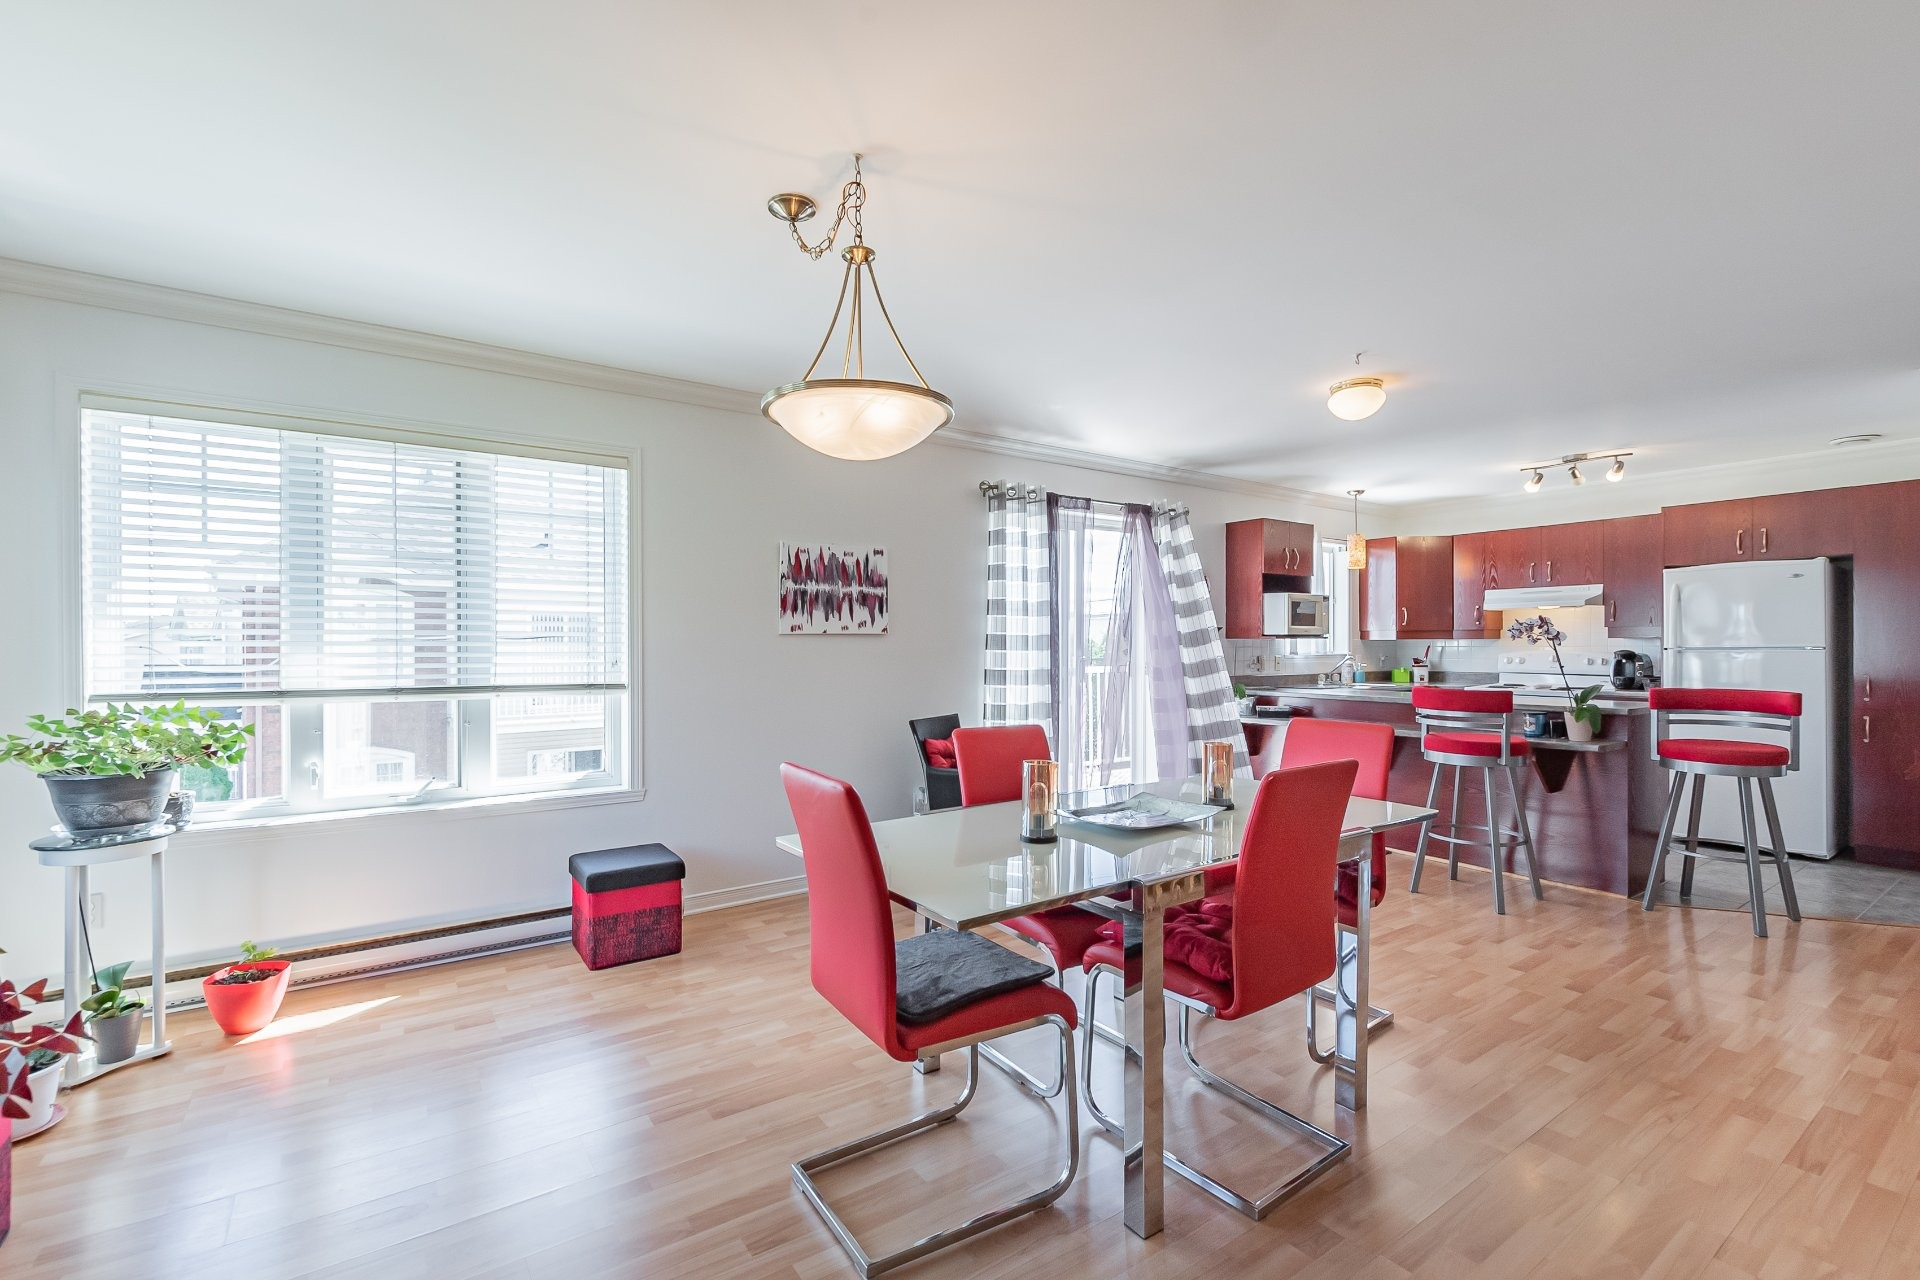 image 5 - Apartment For sale Sainte-Catherine - 5 rooms